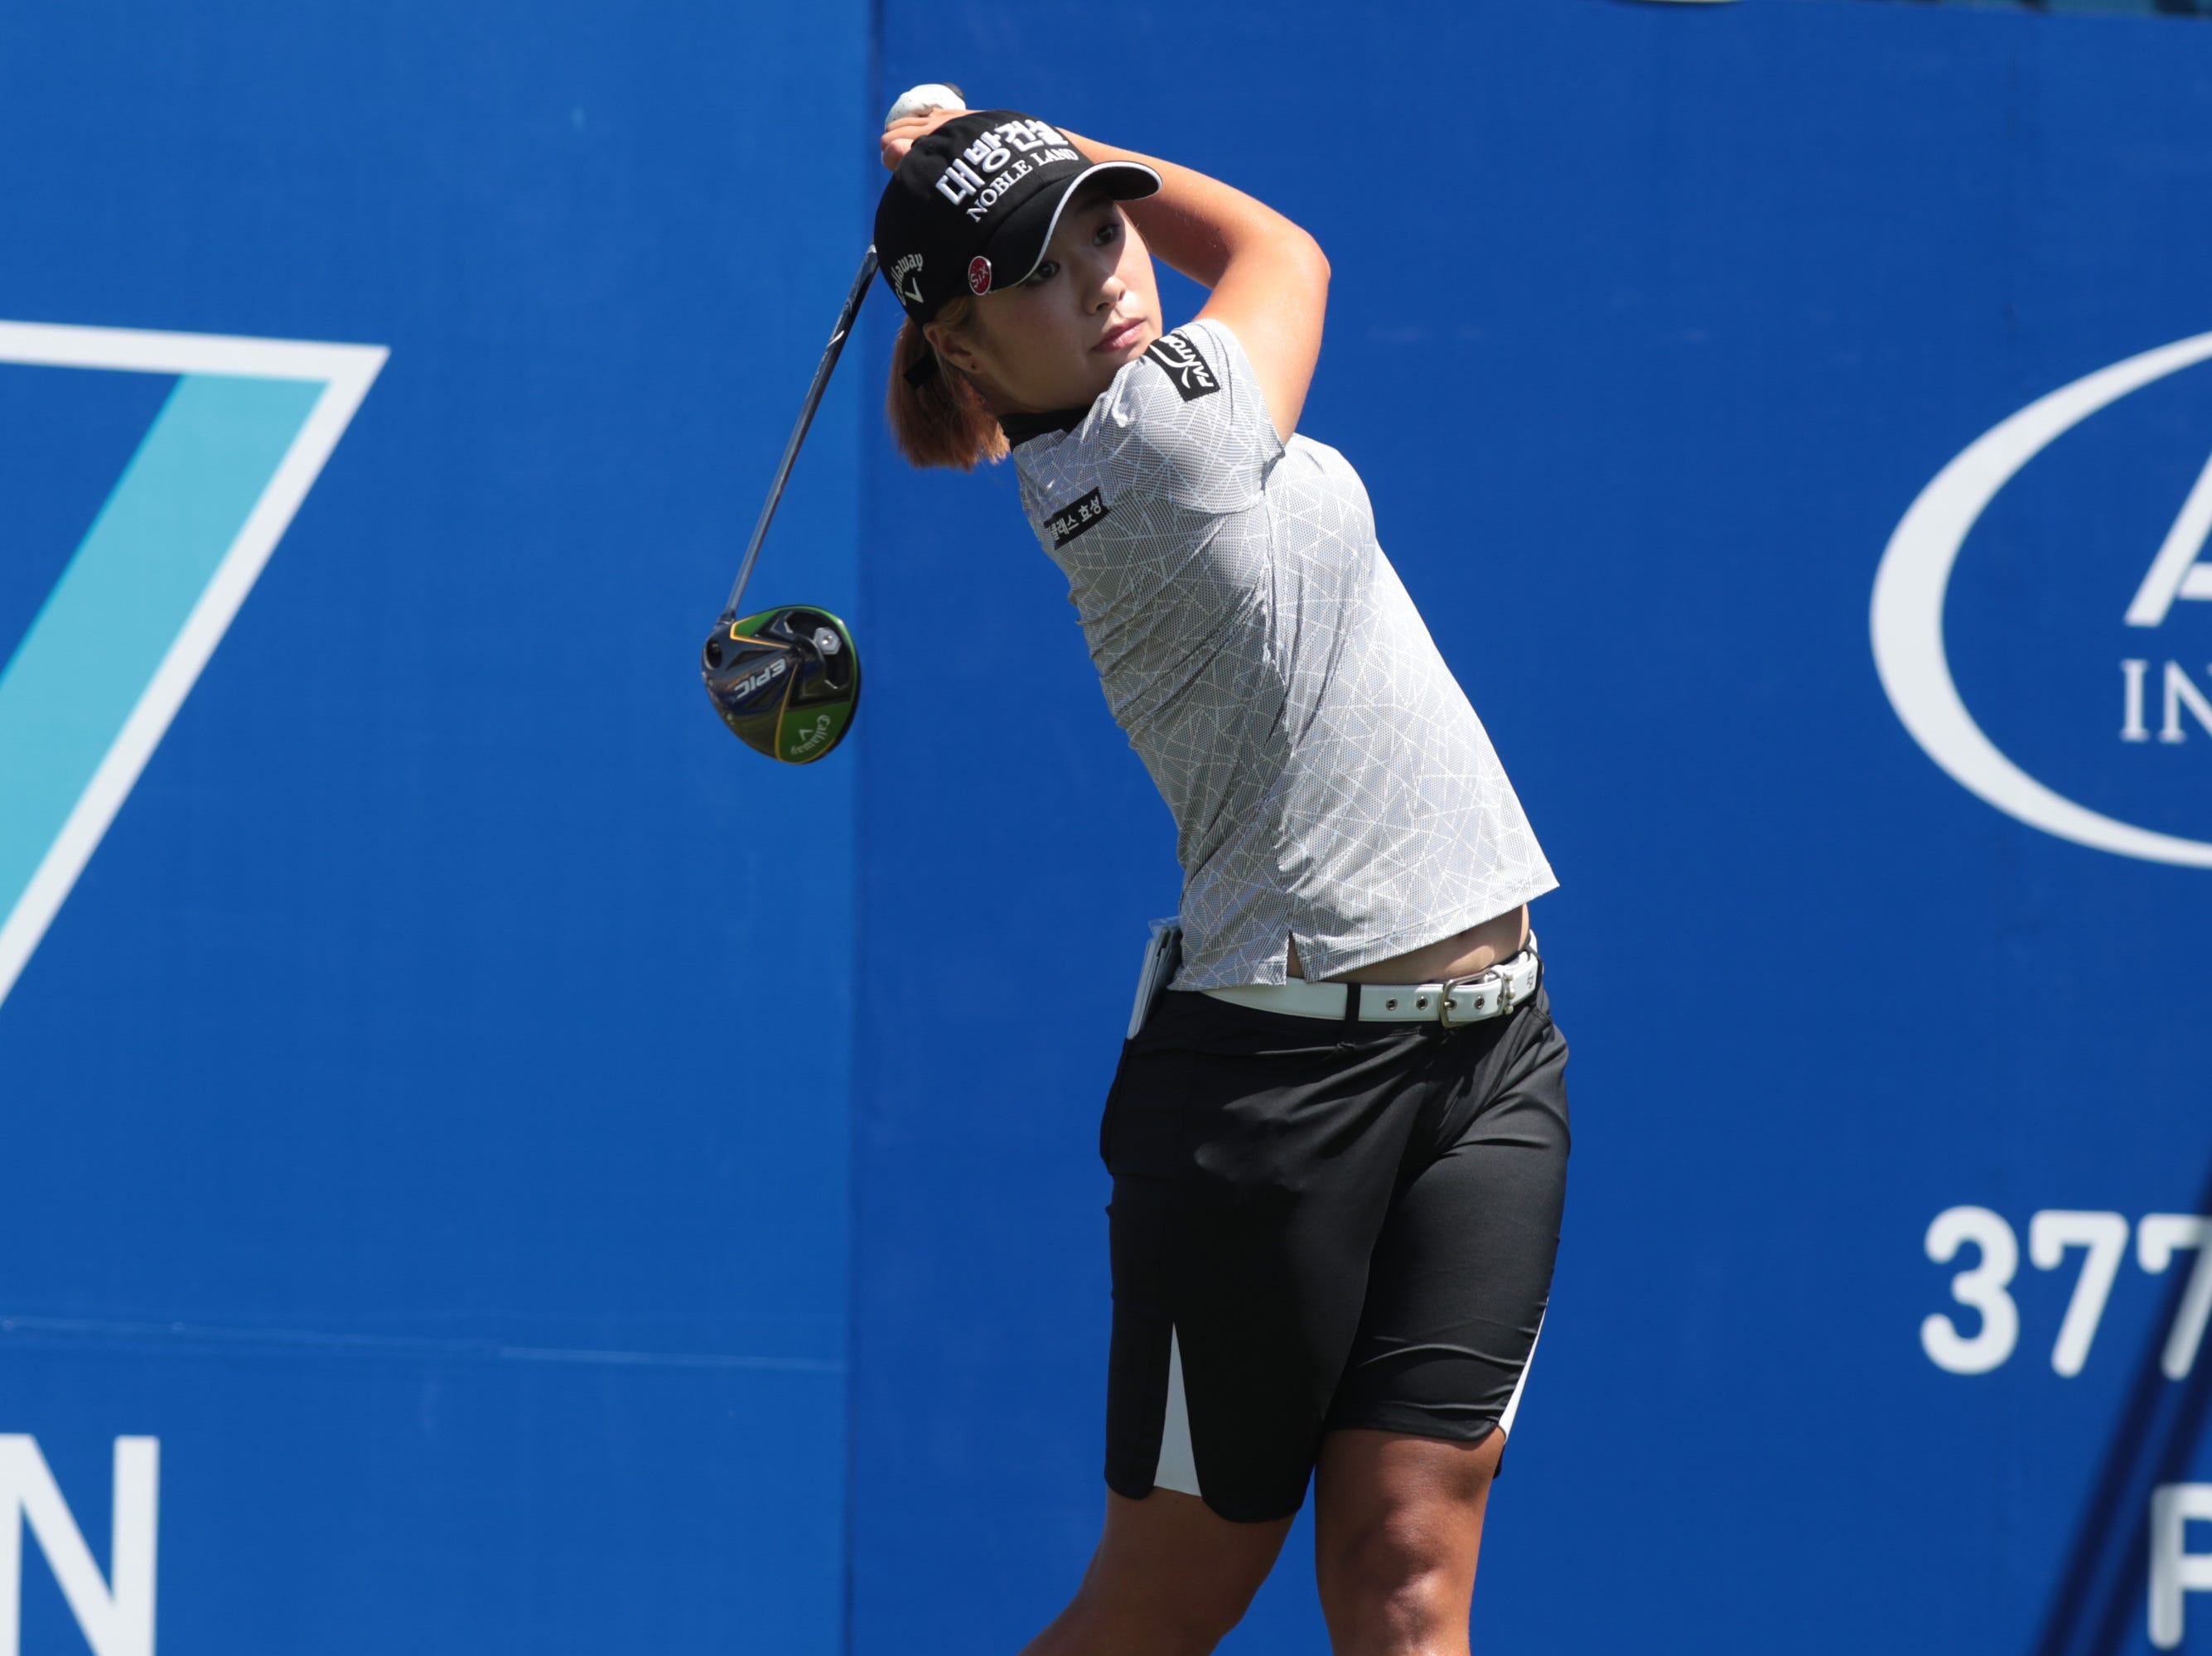 Jeongeun Lee tees off on the first hole of the Dinah Shore Course at the ANA Inspiration, Rancho Mirage, Calif., April 6, 2019.